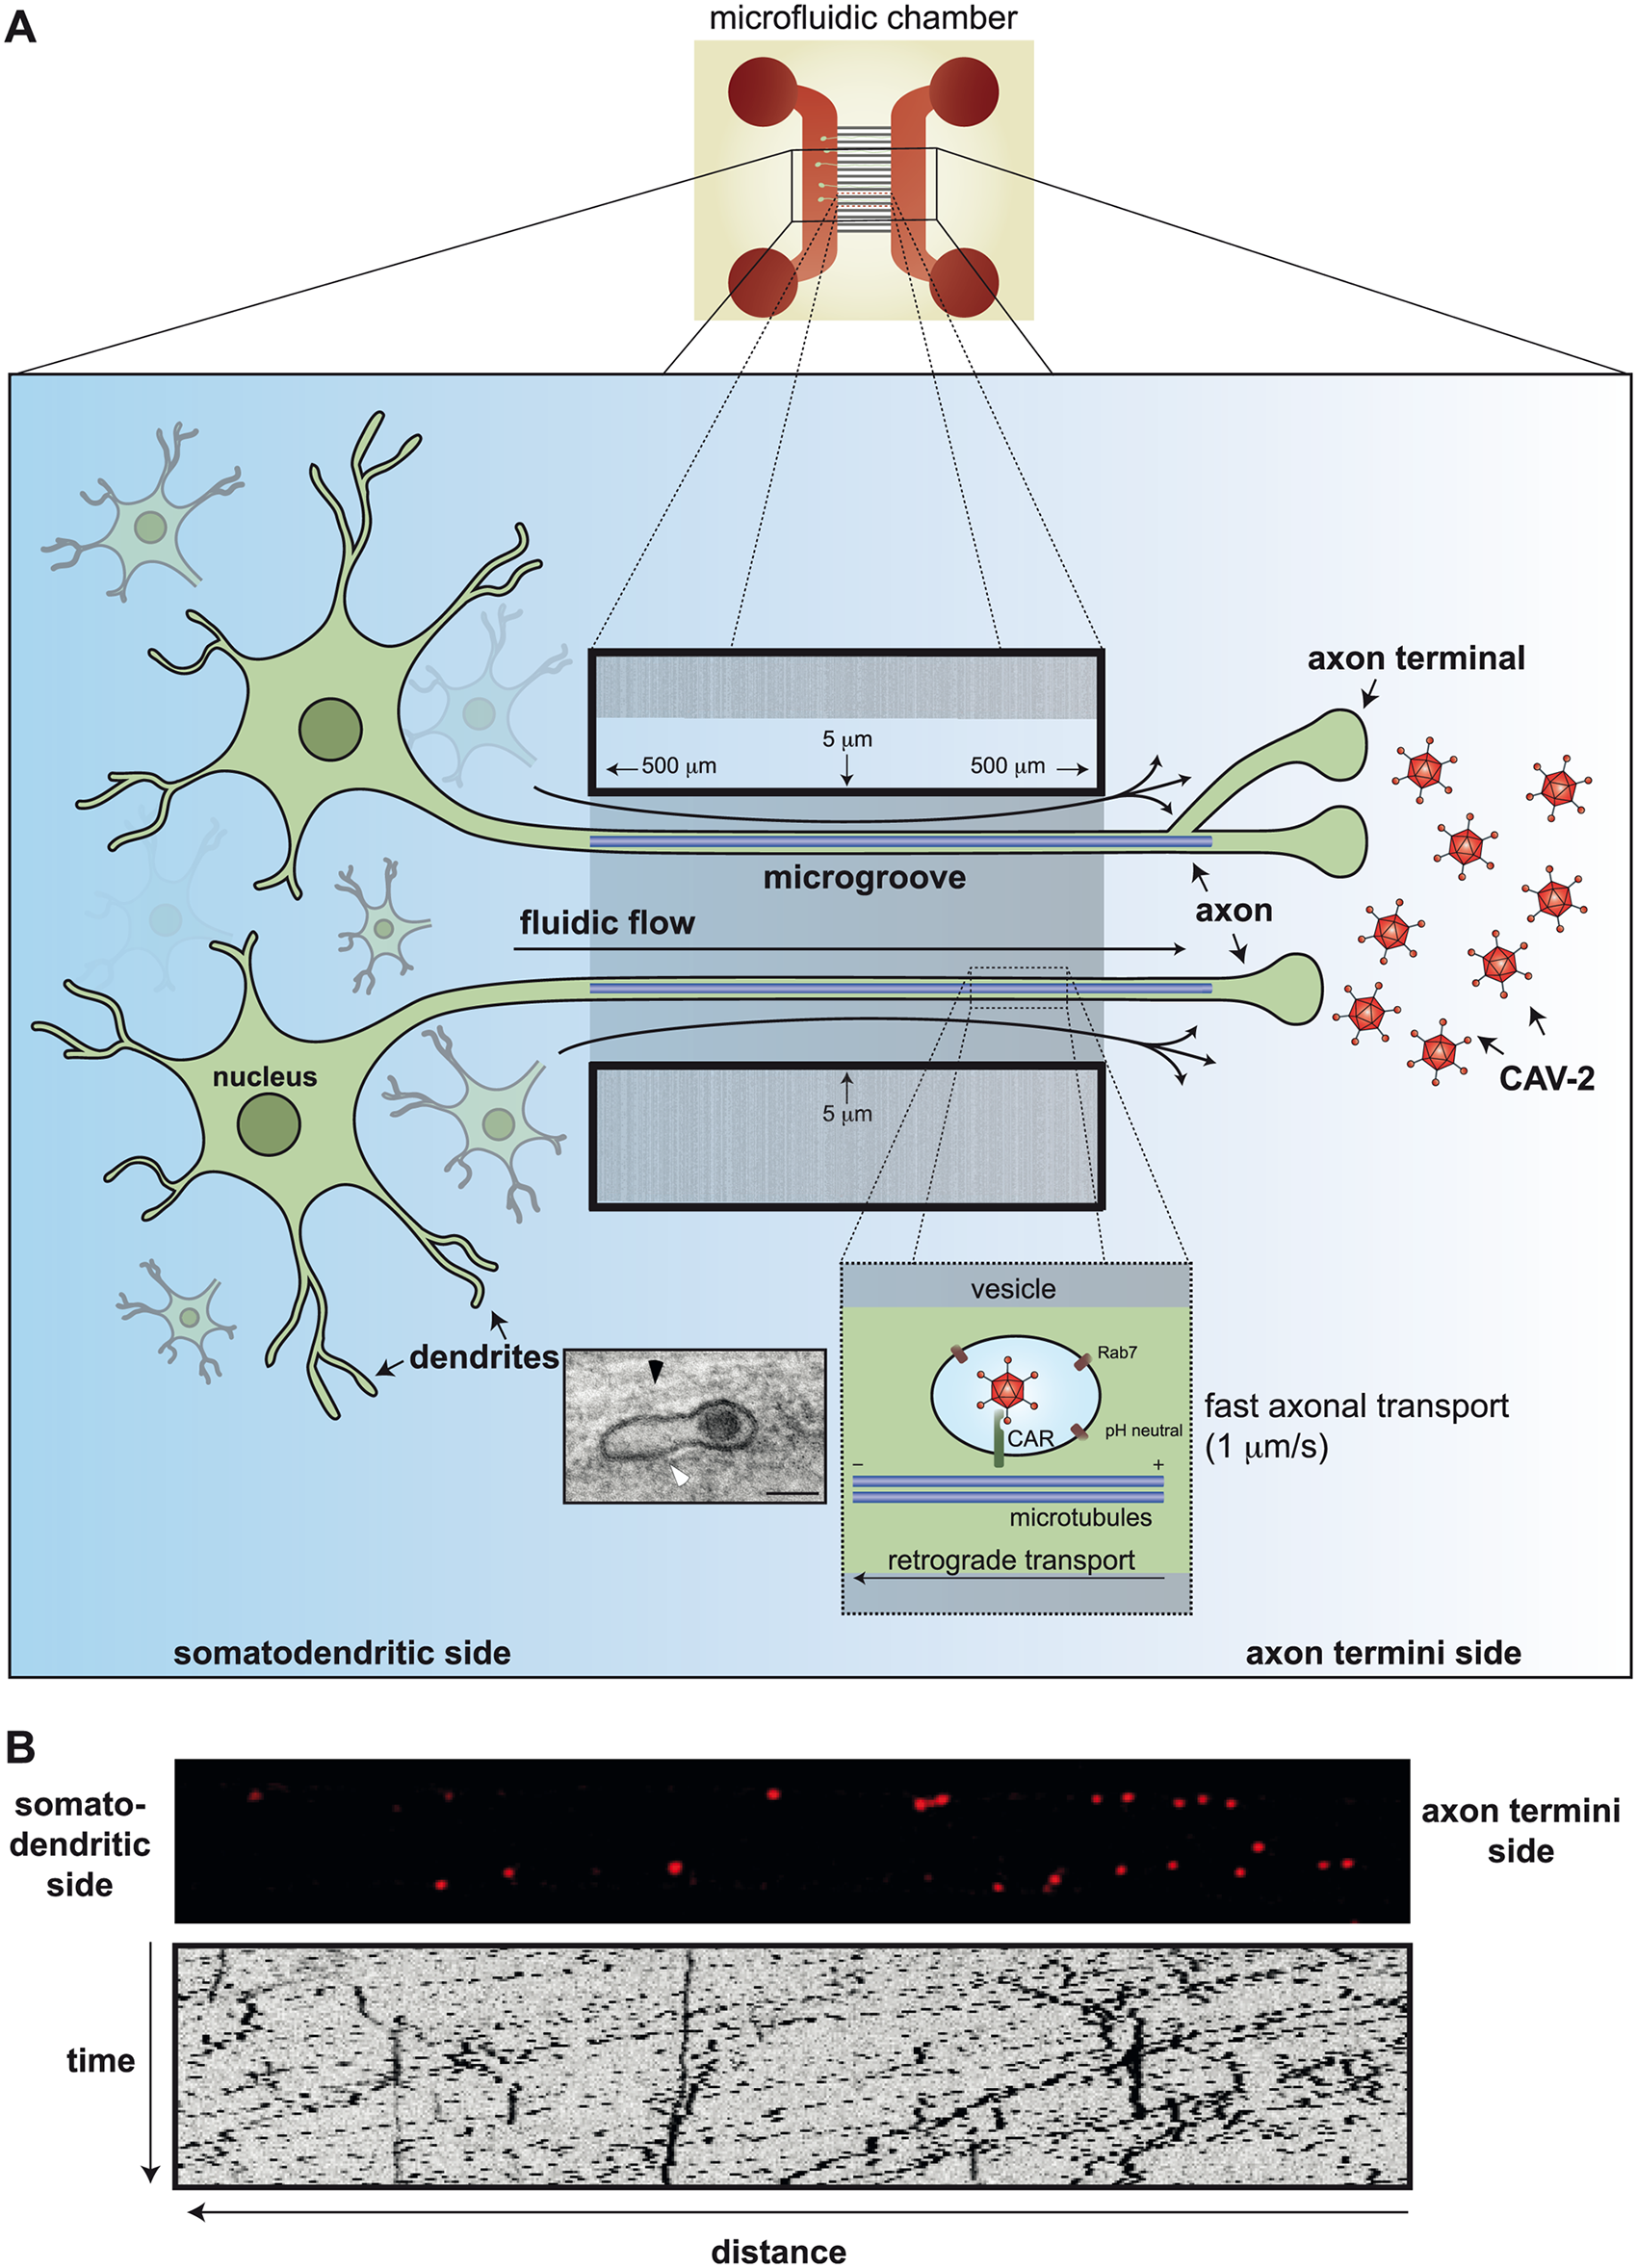 Axonal transport of CAV-2 in neurons.